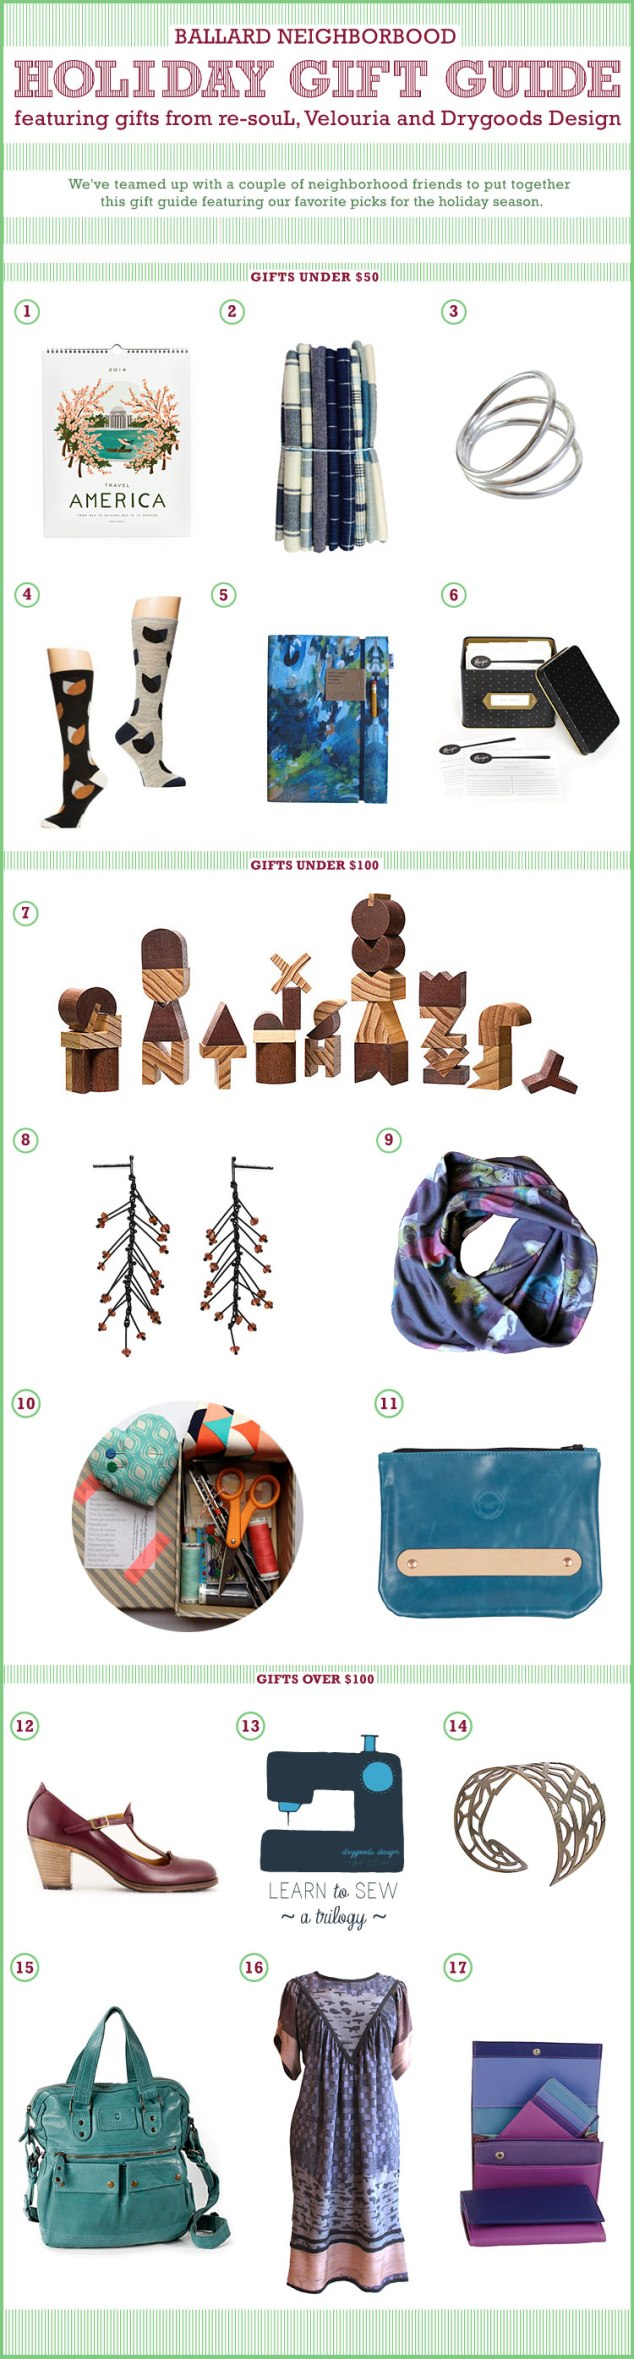 BALLARD HOLIDAY GIFT GUIDE